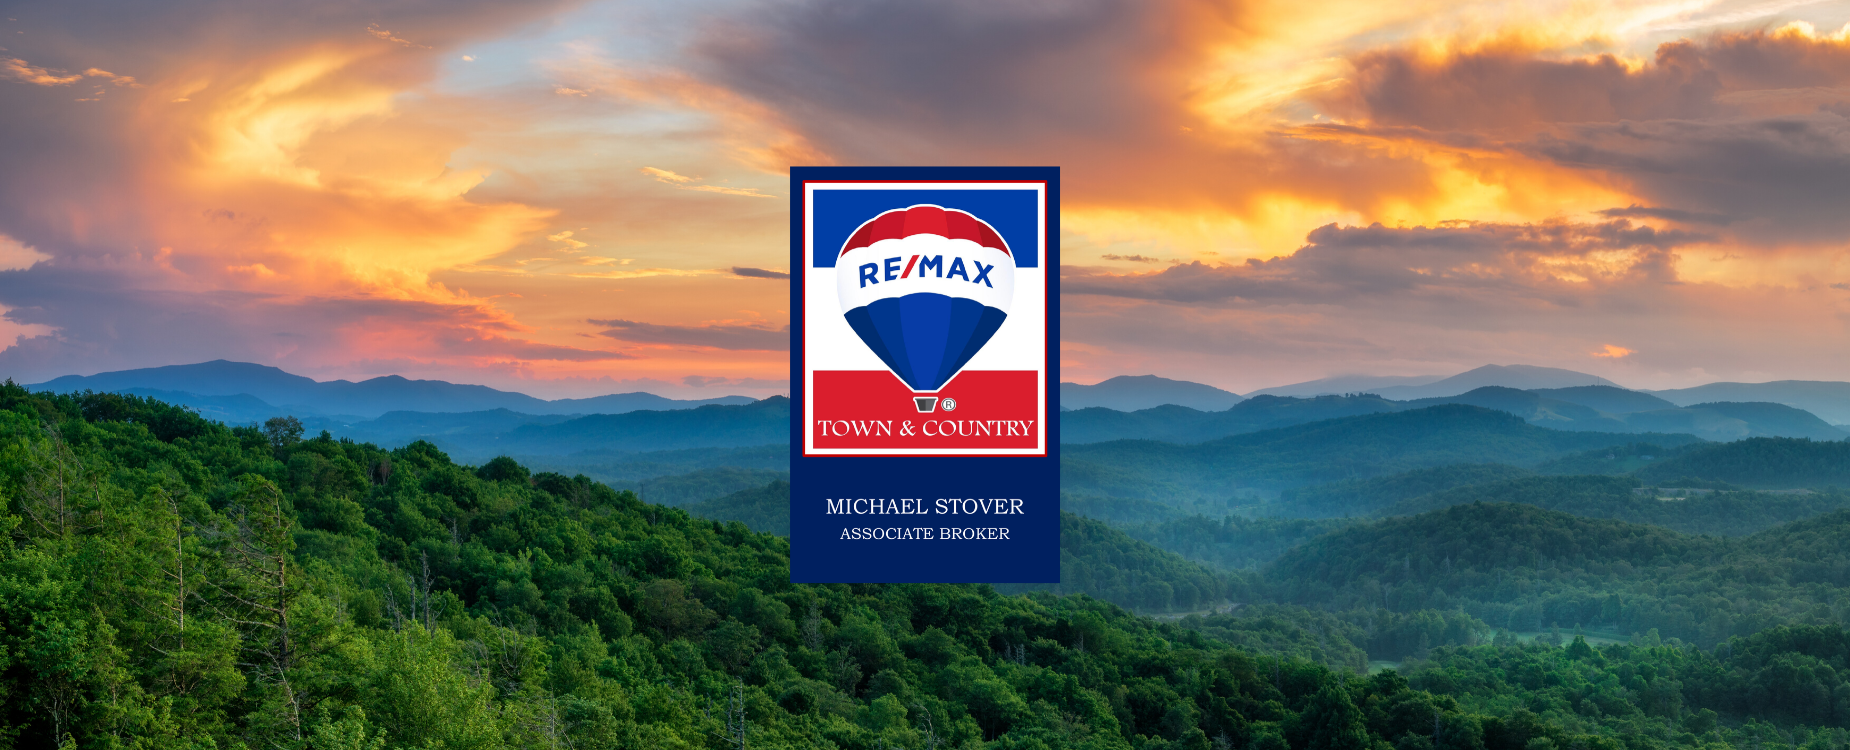 Mike Stover RE/MAX header 3